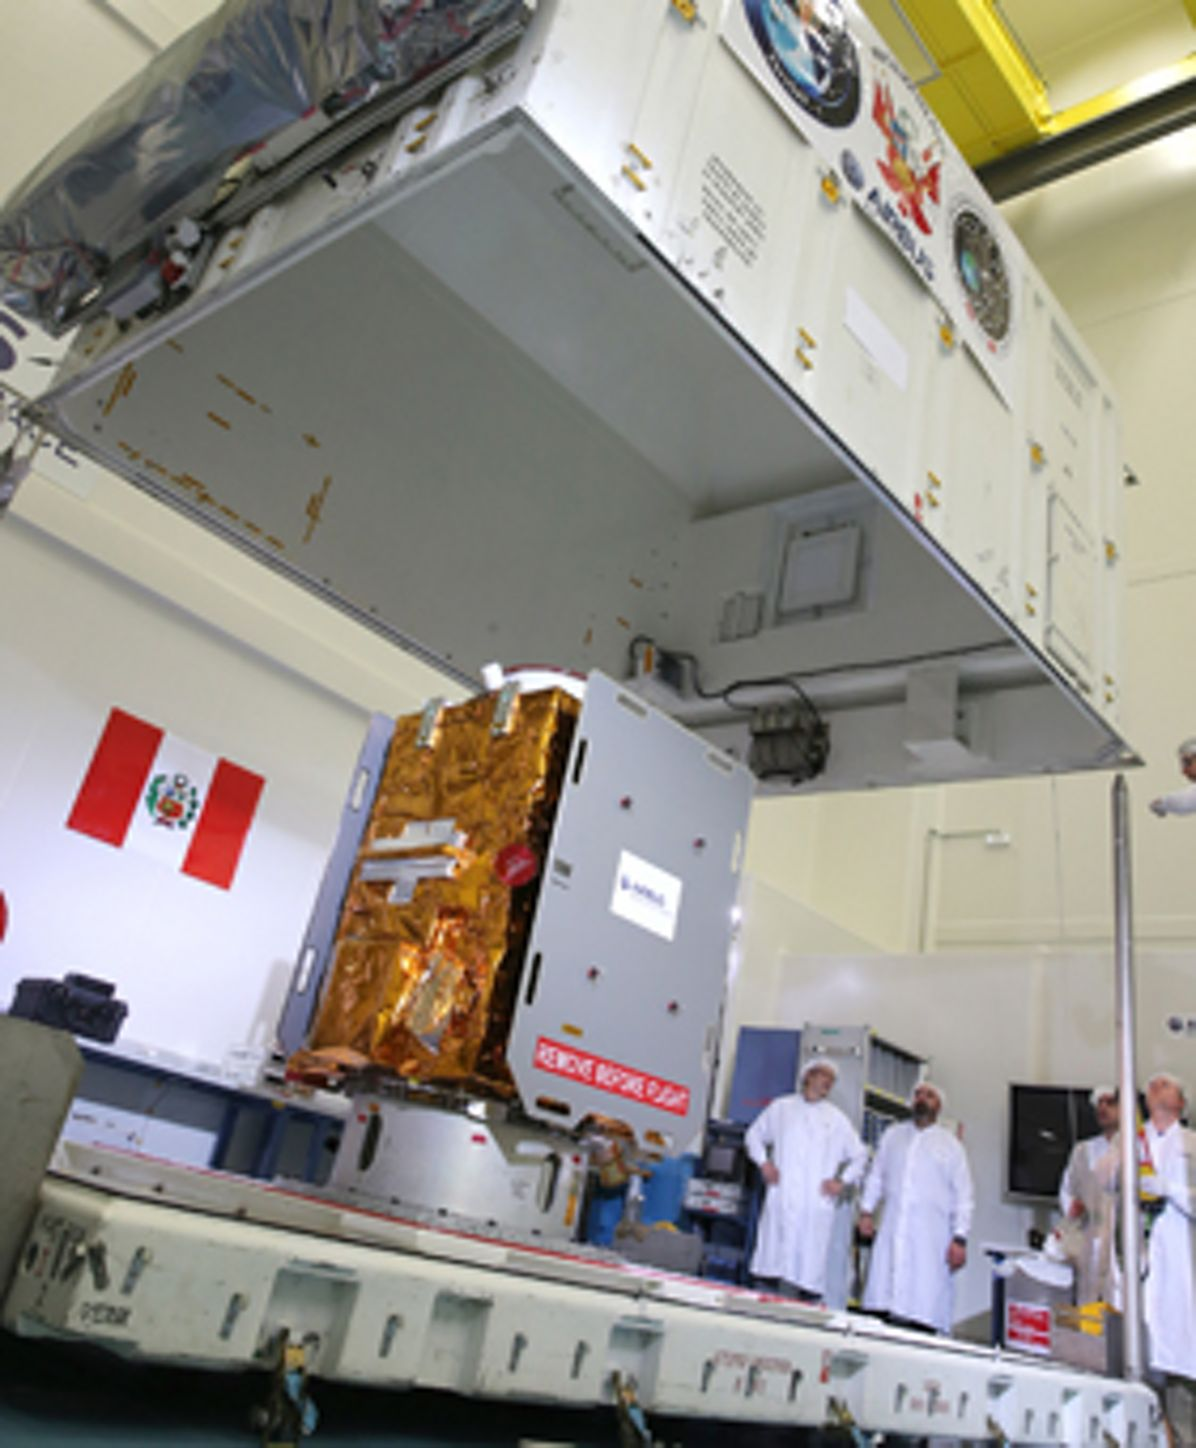 PerùSAT-1 satellite storage in Airbus Toulouse cleanroom